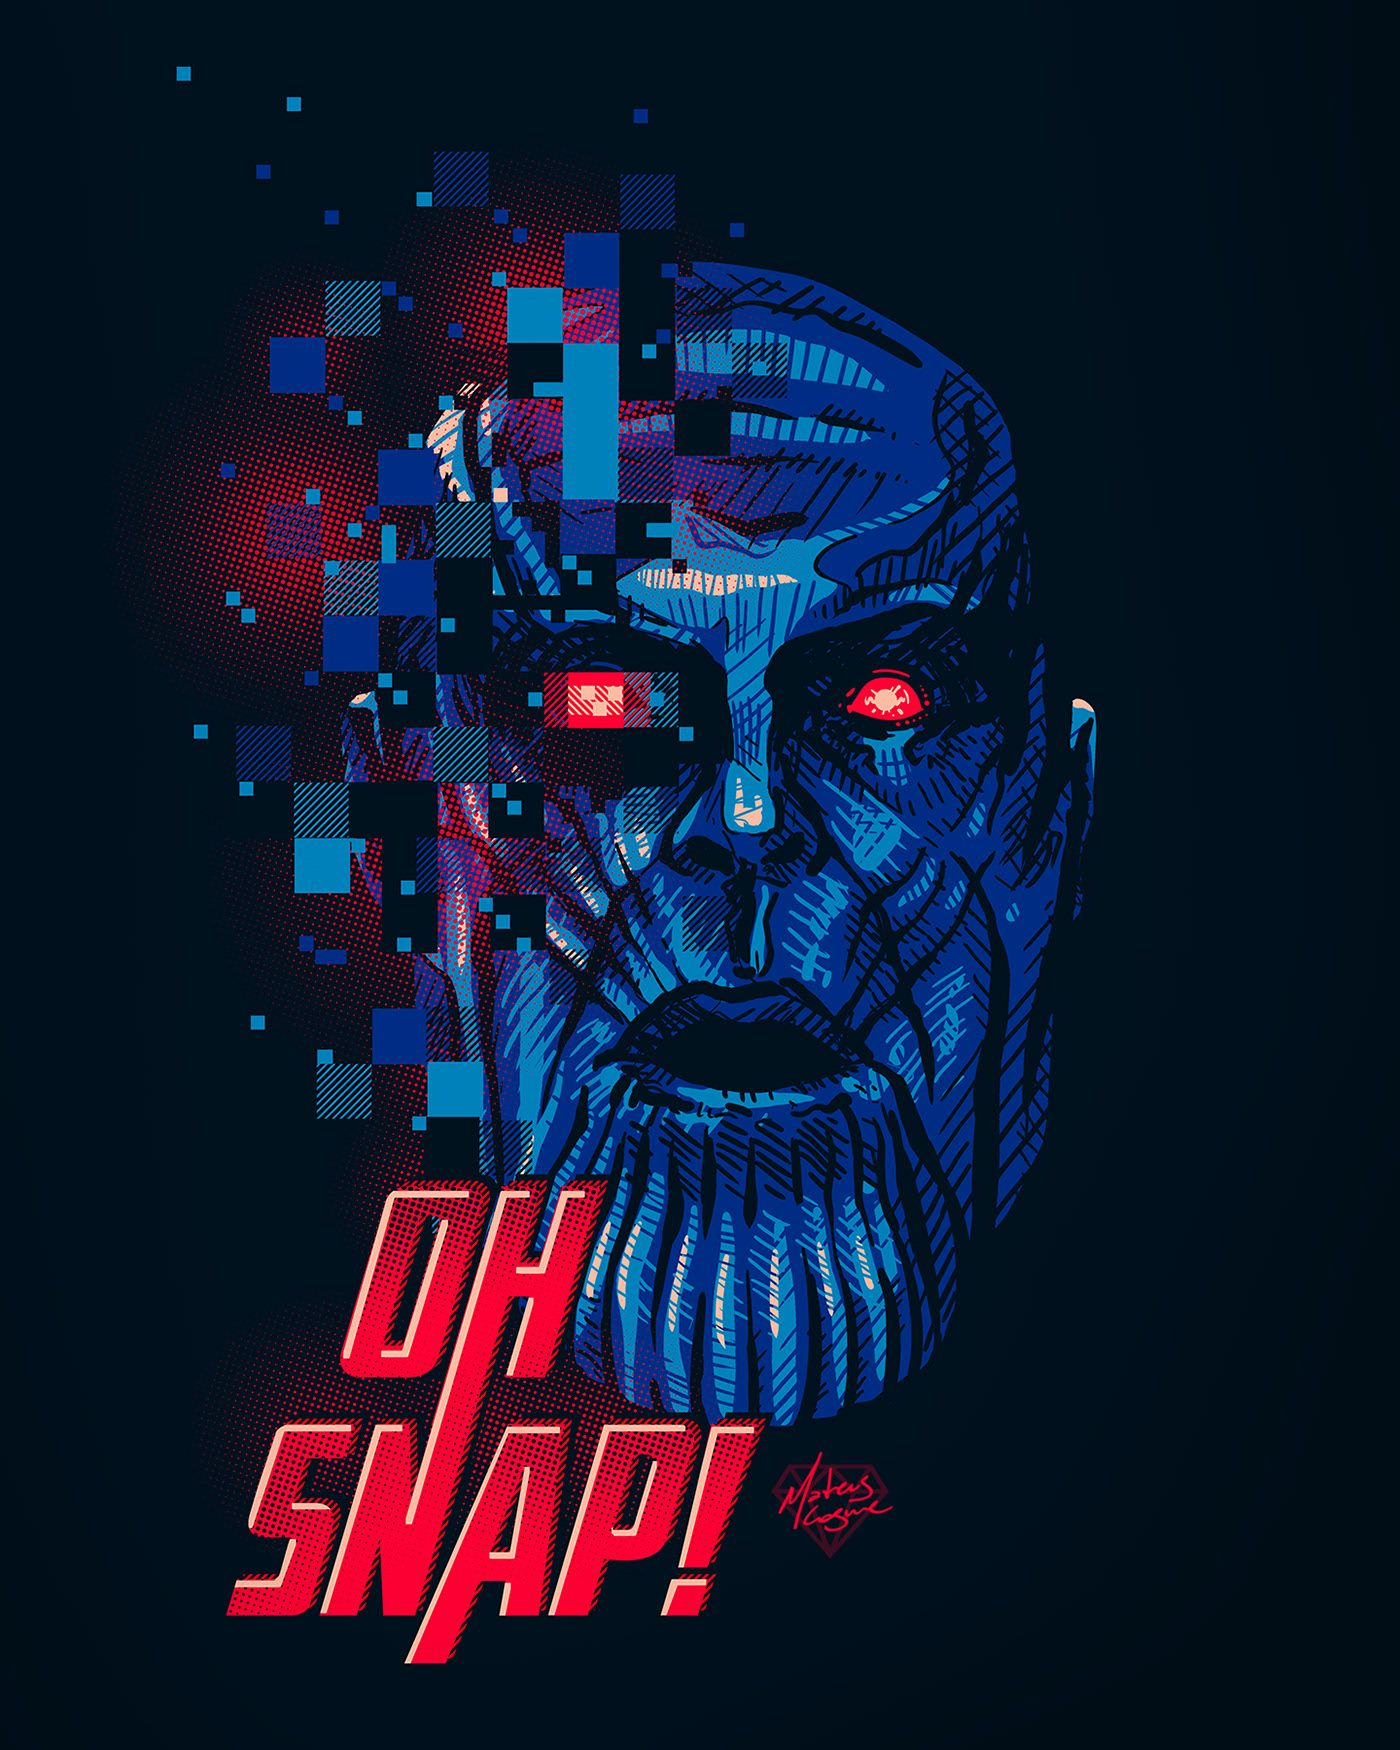 Oh Snap! on Behance Iphone wallpaper, Wallpaper, Iphone